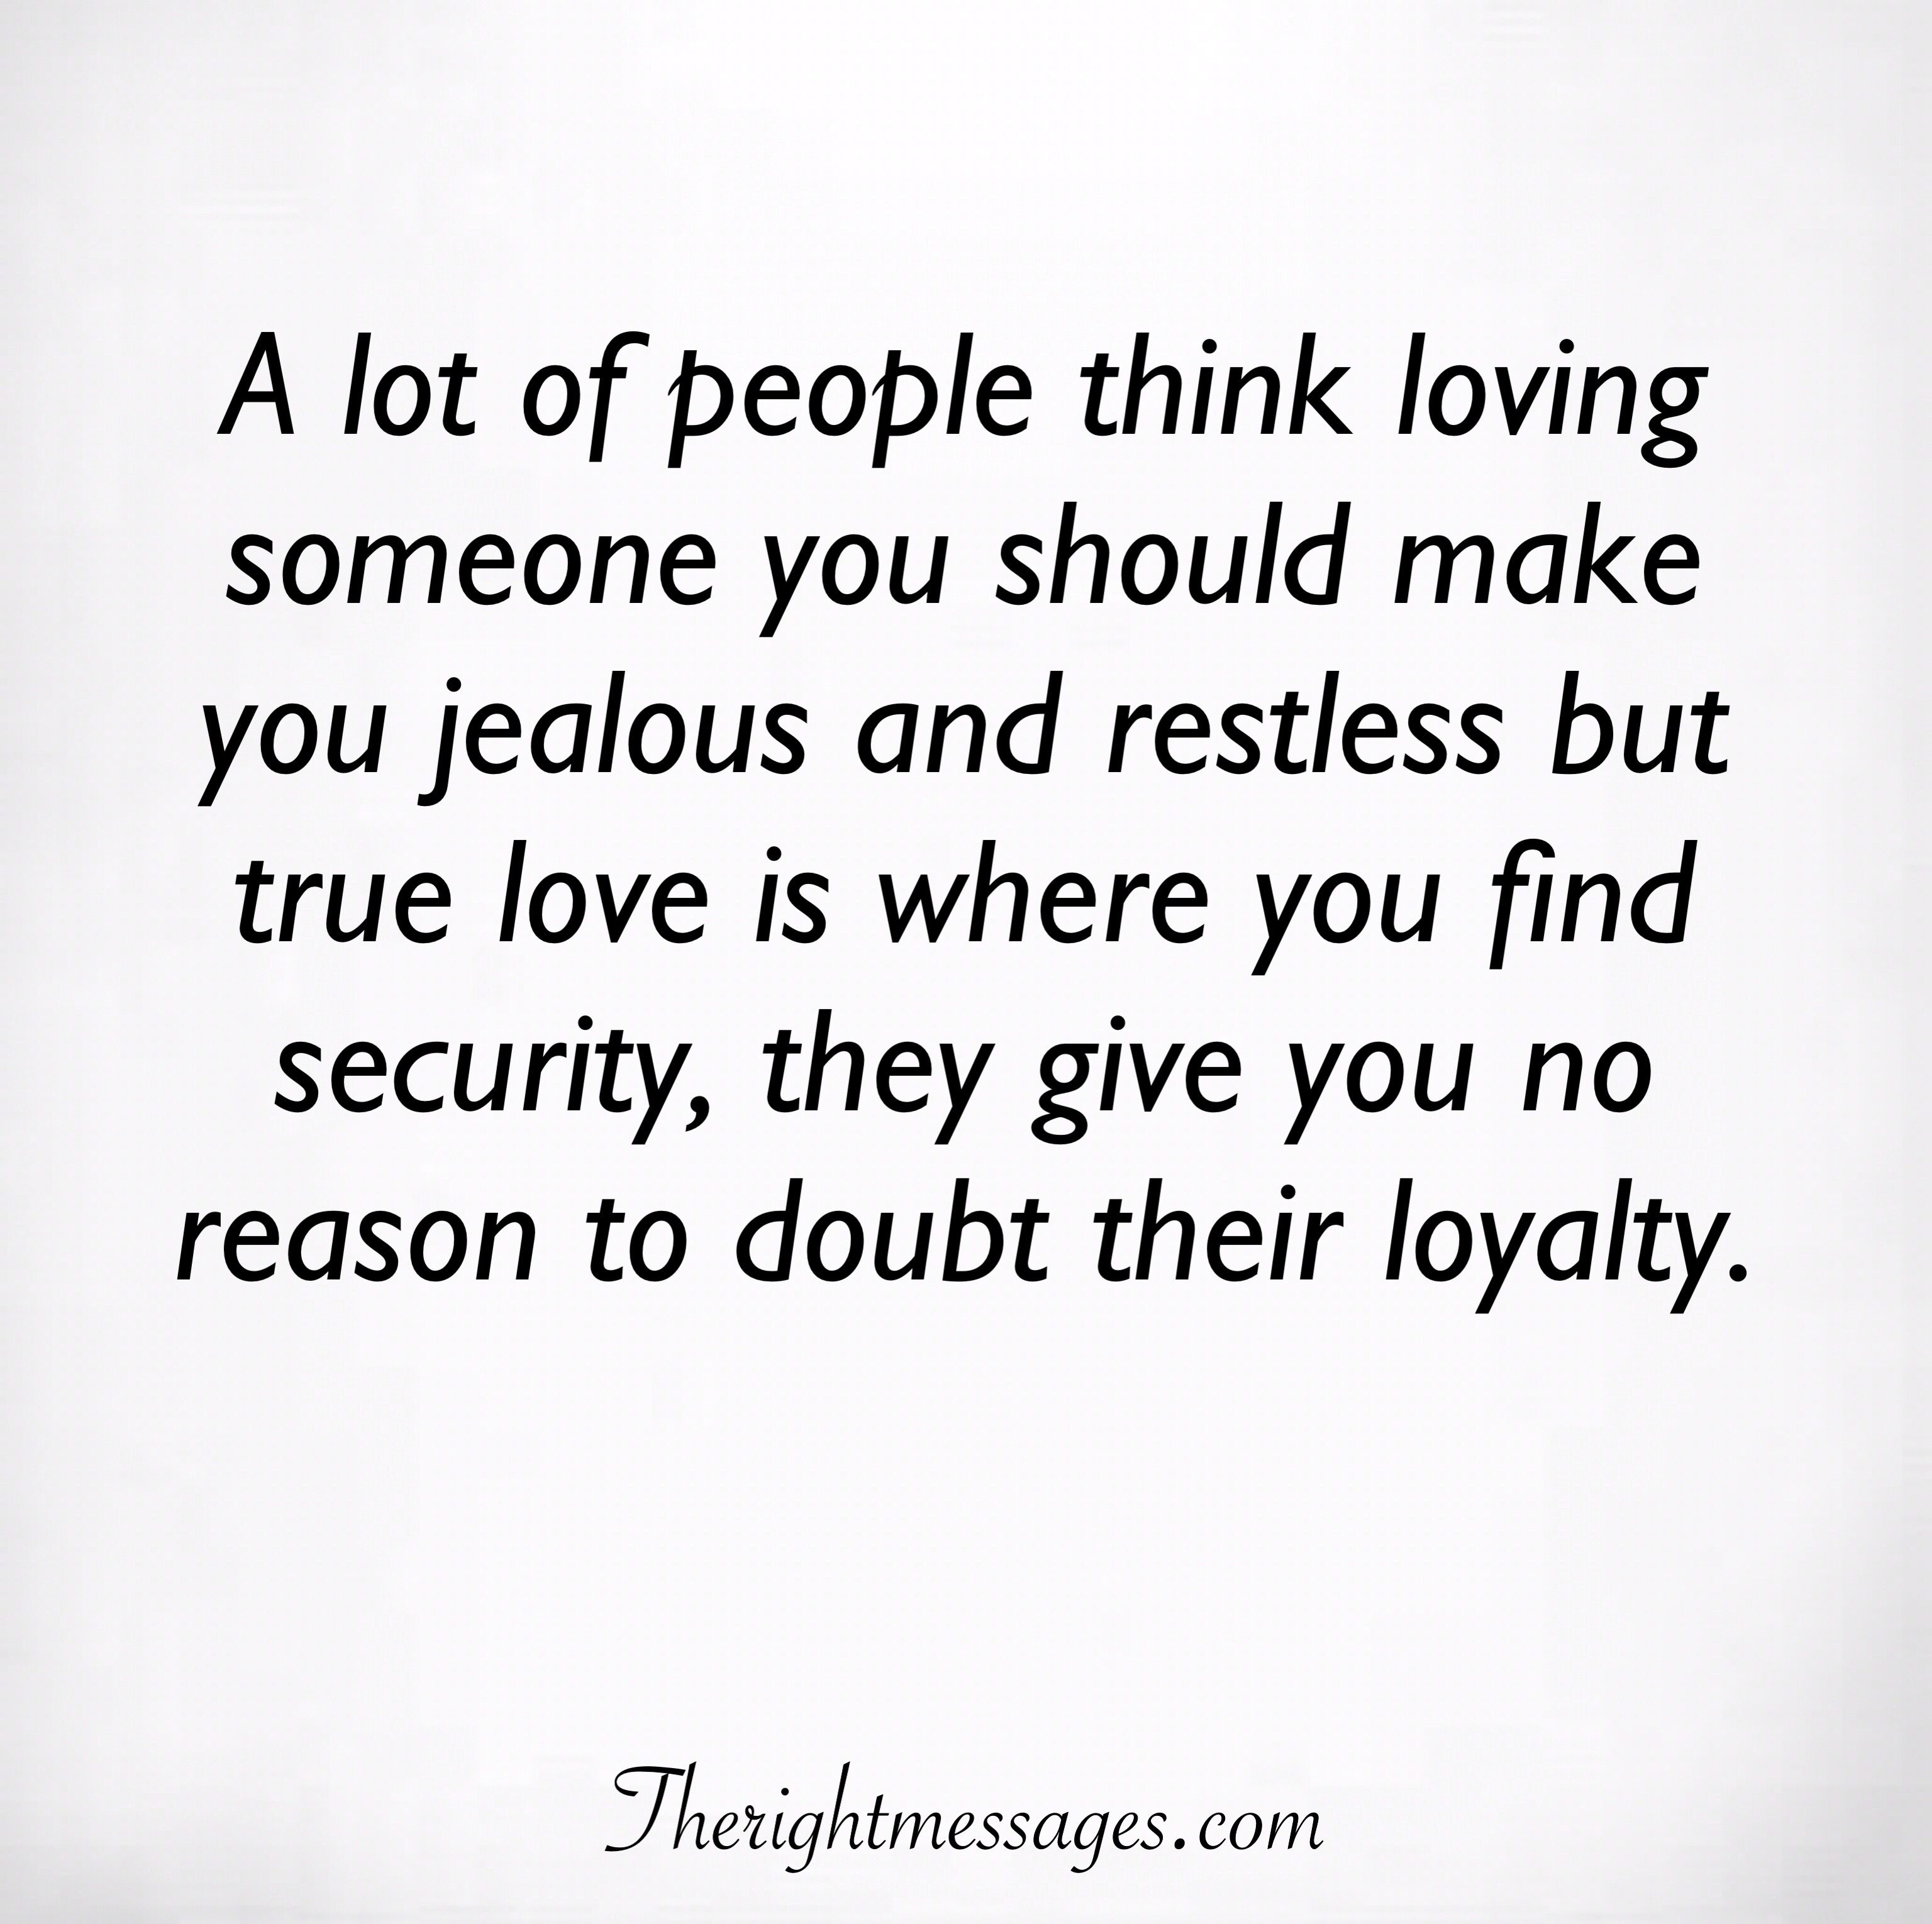 True And Real Love Quotes & Saying - The Right Messages